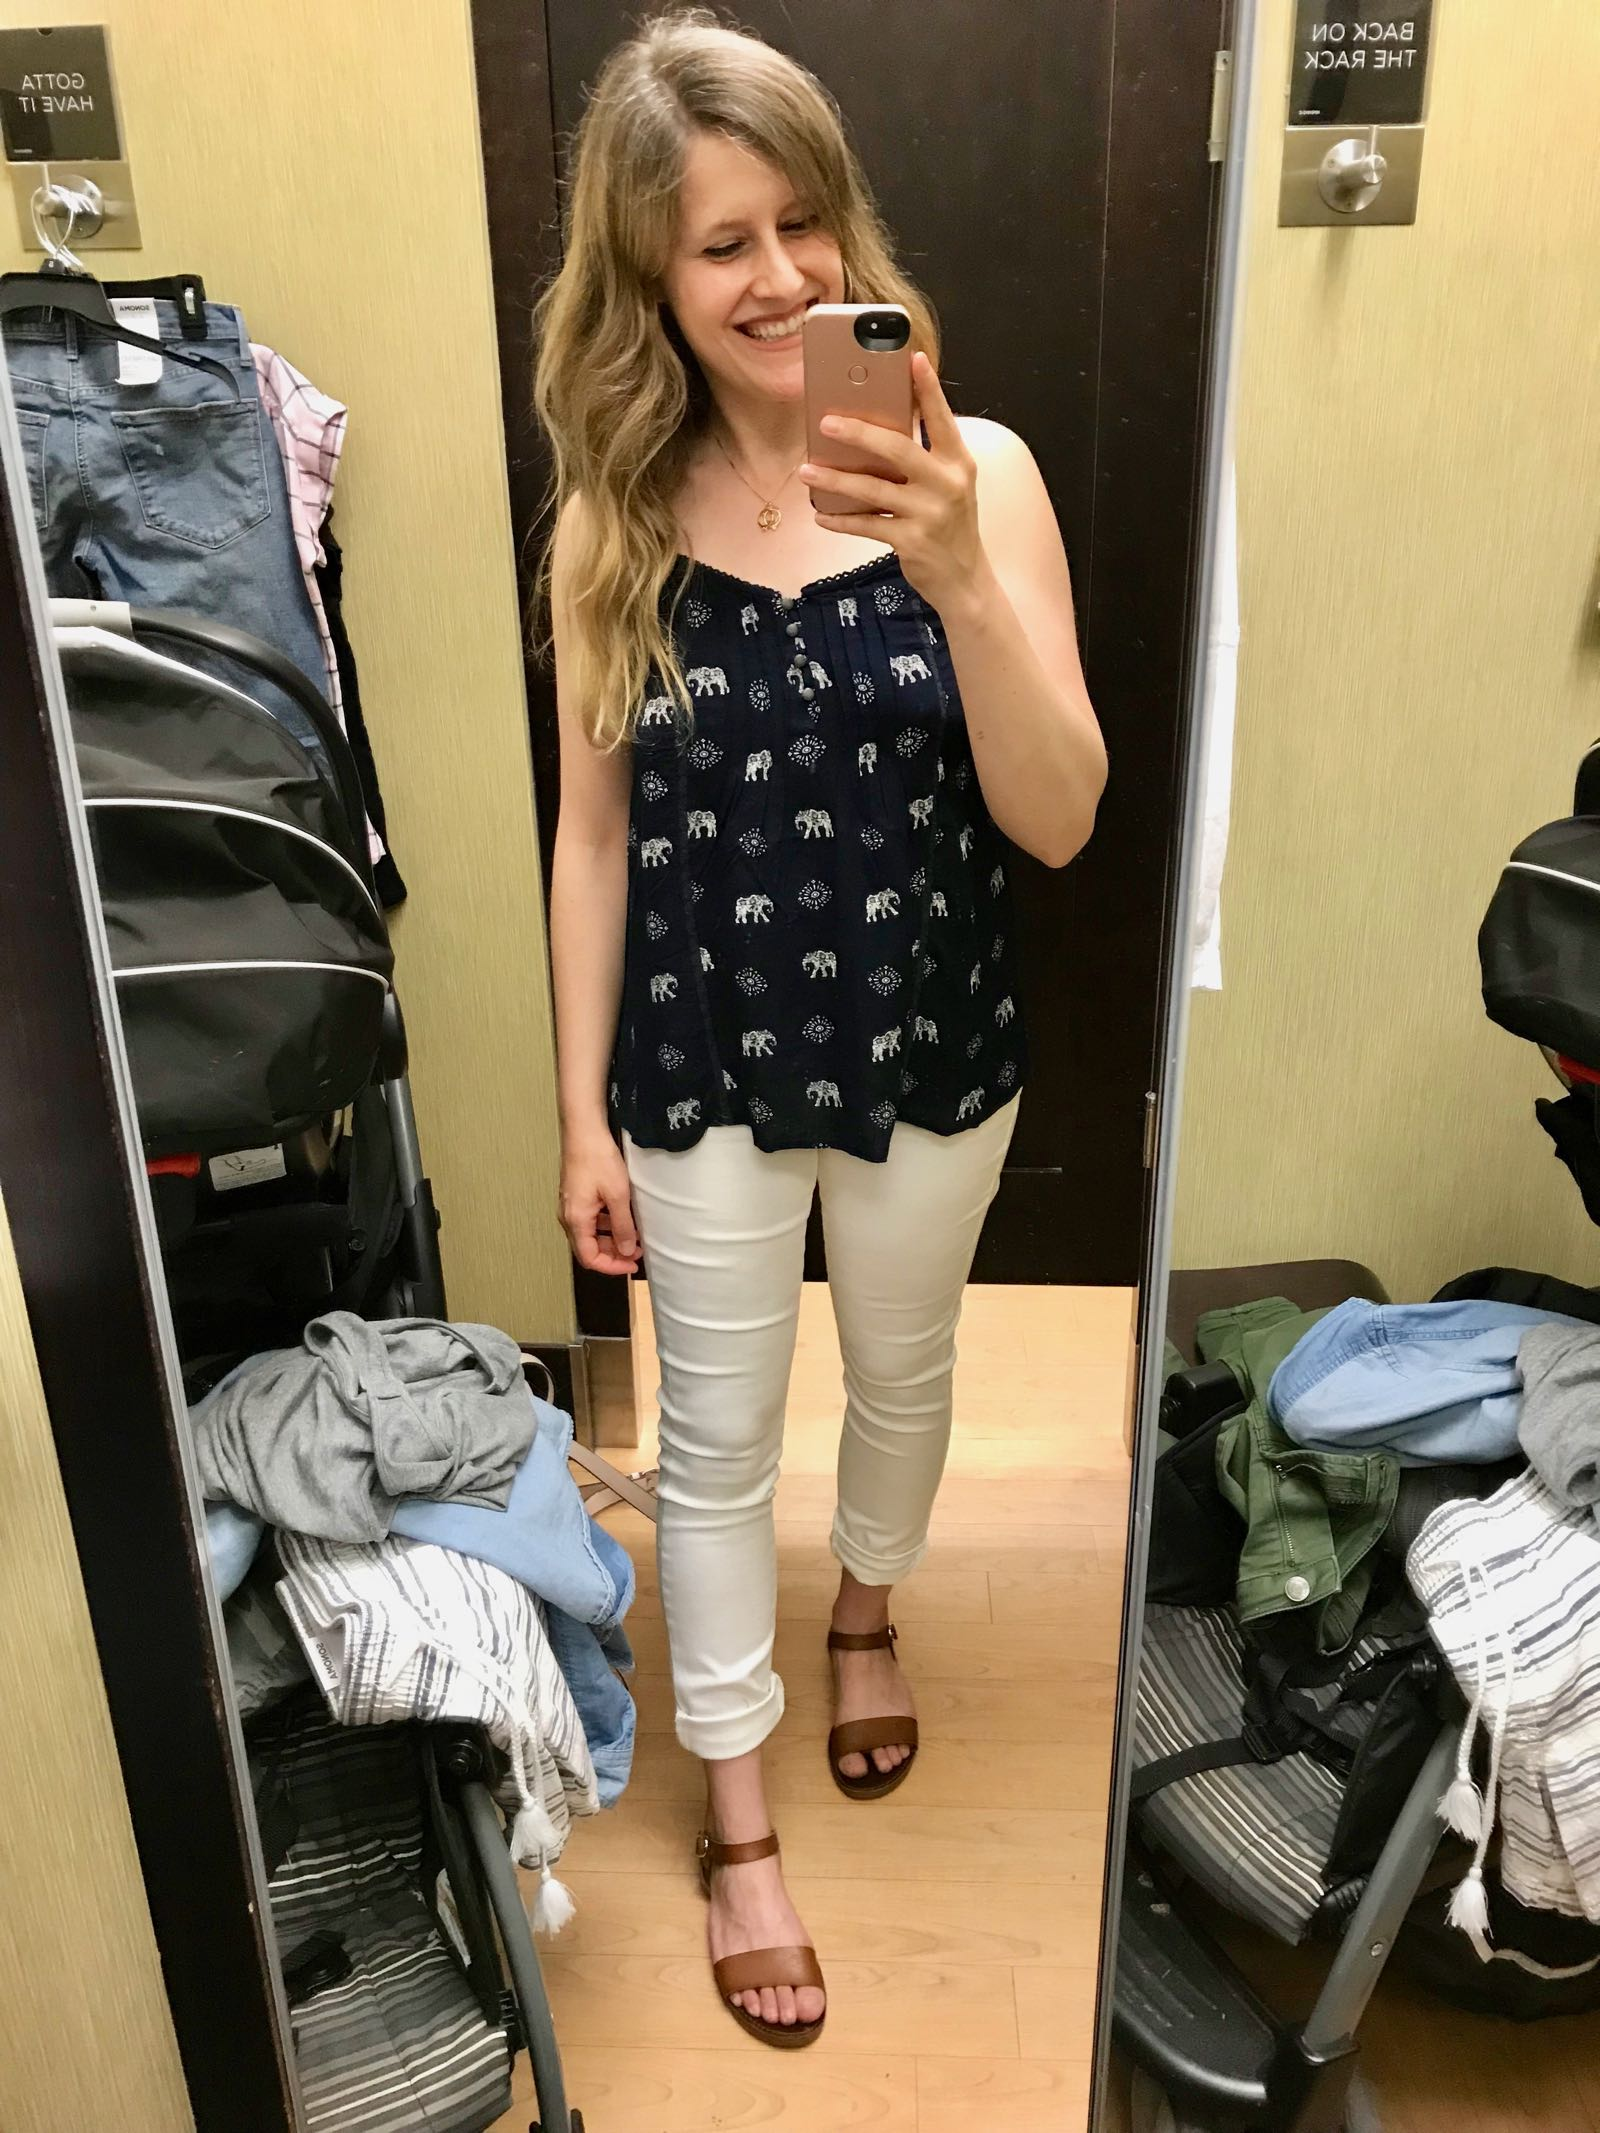 Kohl's summer higlights include this pretty pint top under $15 and white jeans under $20!